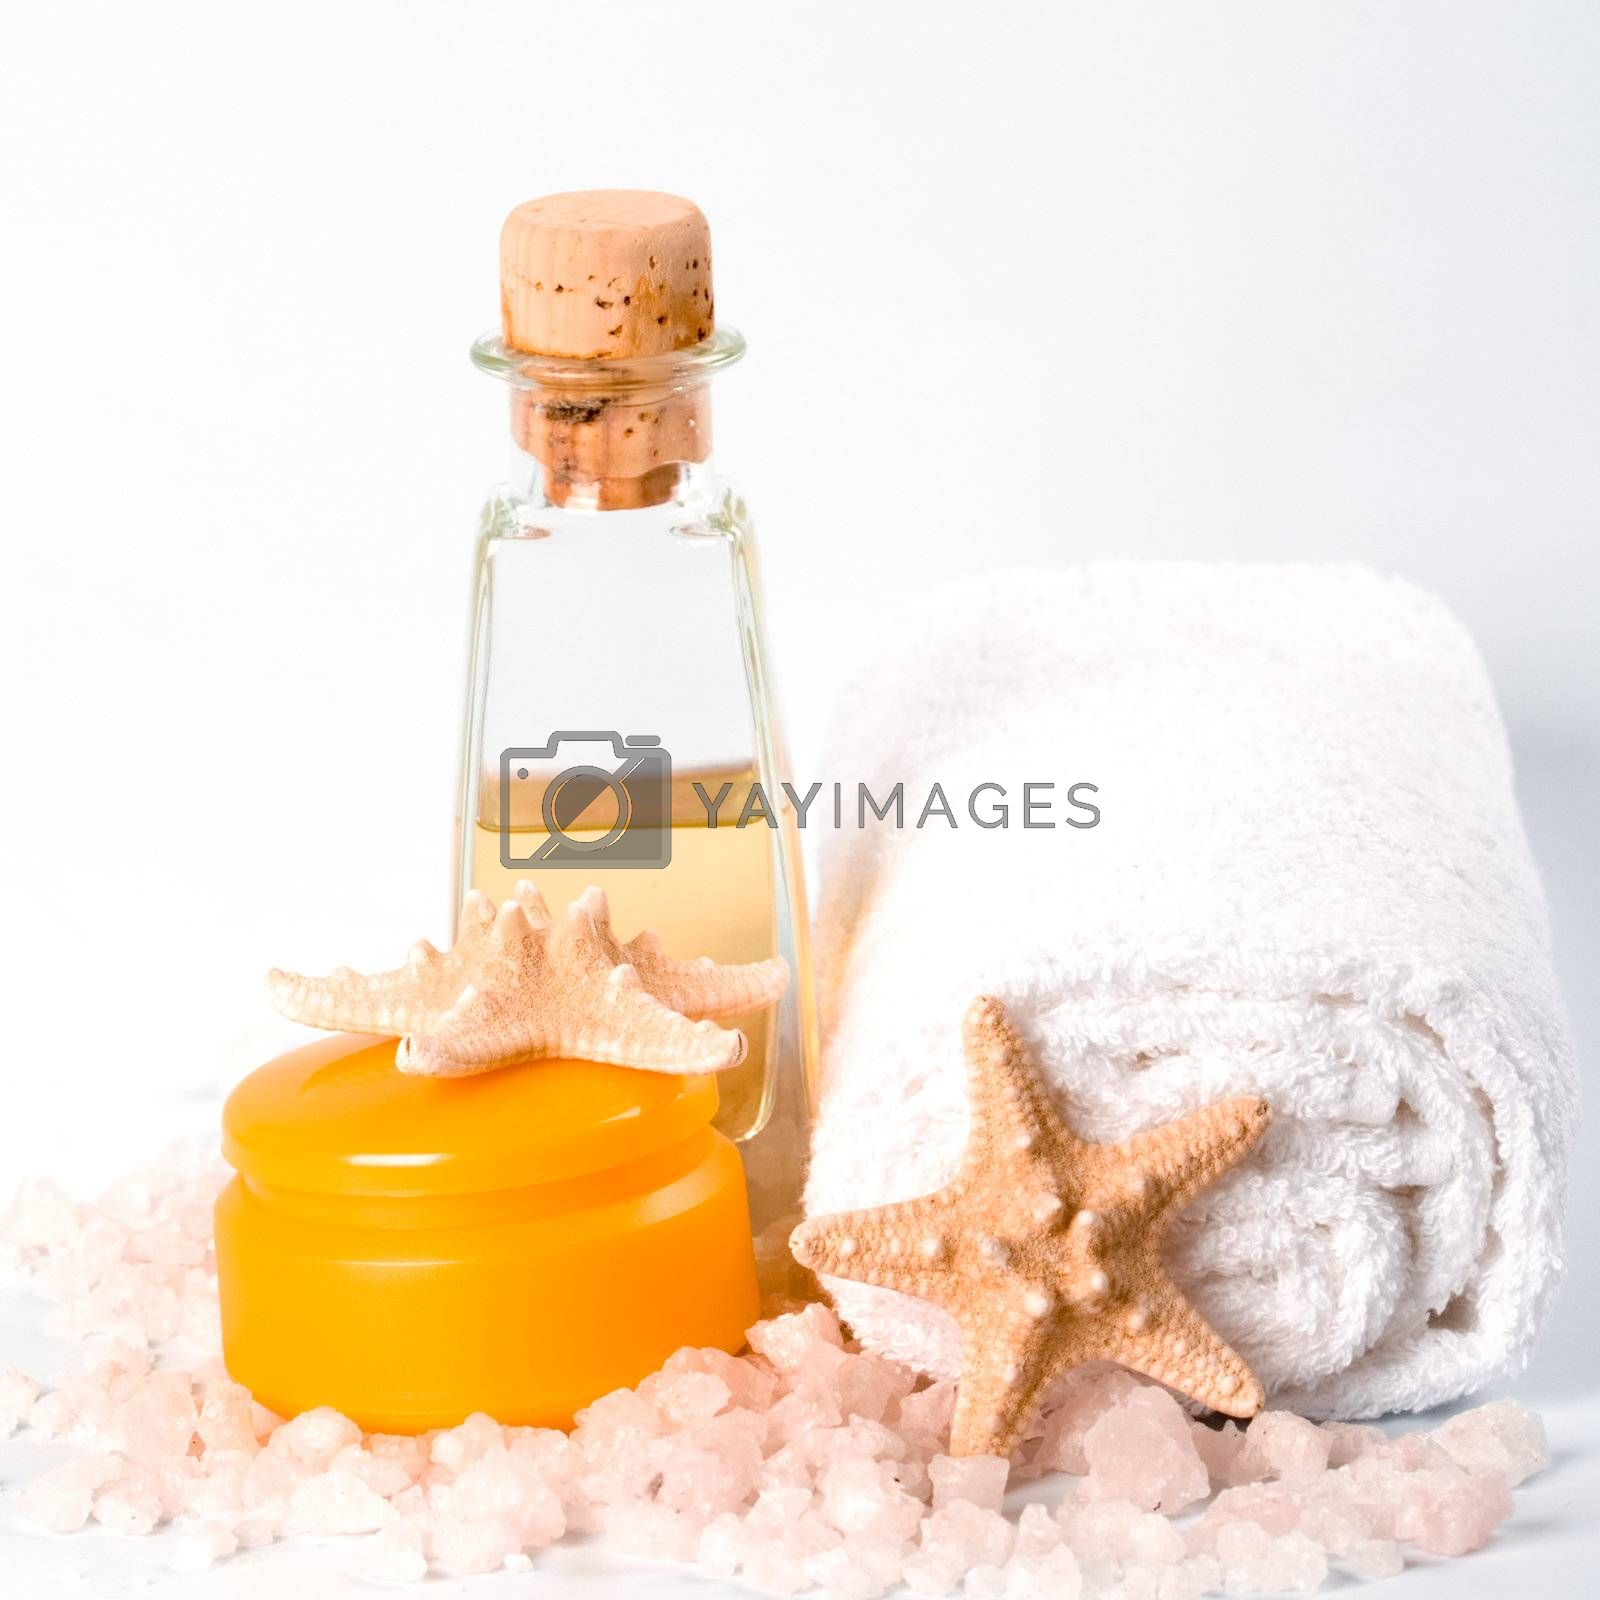 spa products: sea salt, towel, facial creme oil and stars